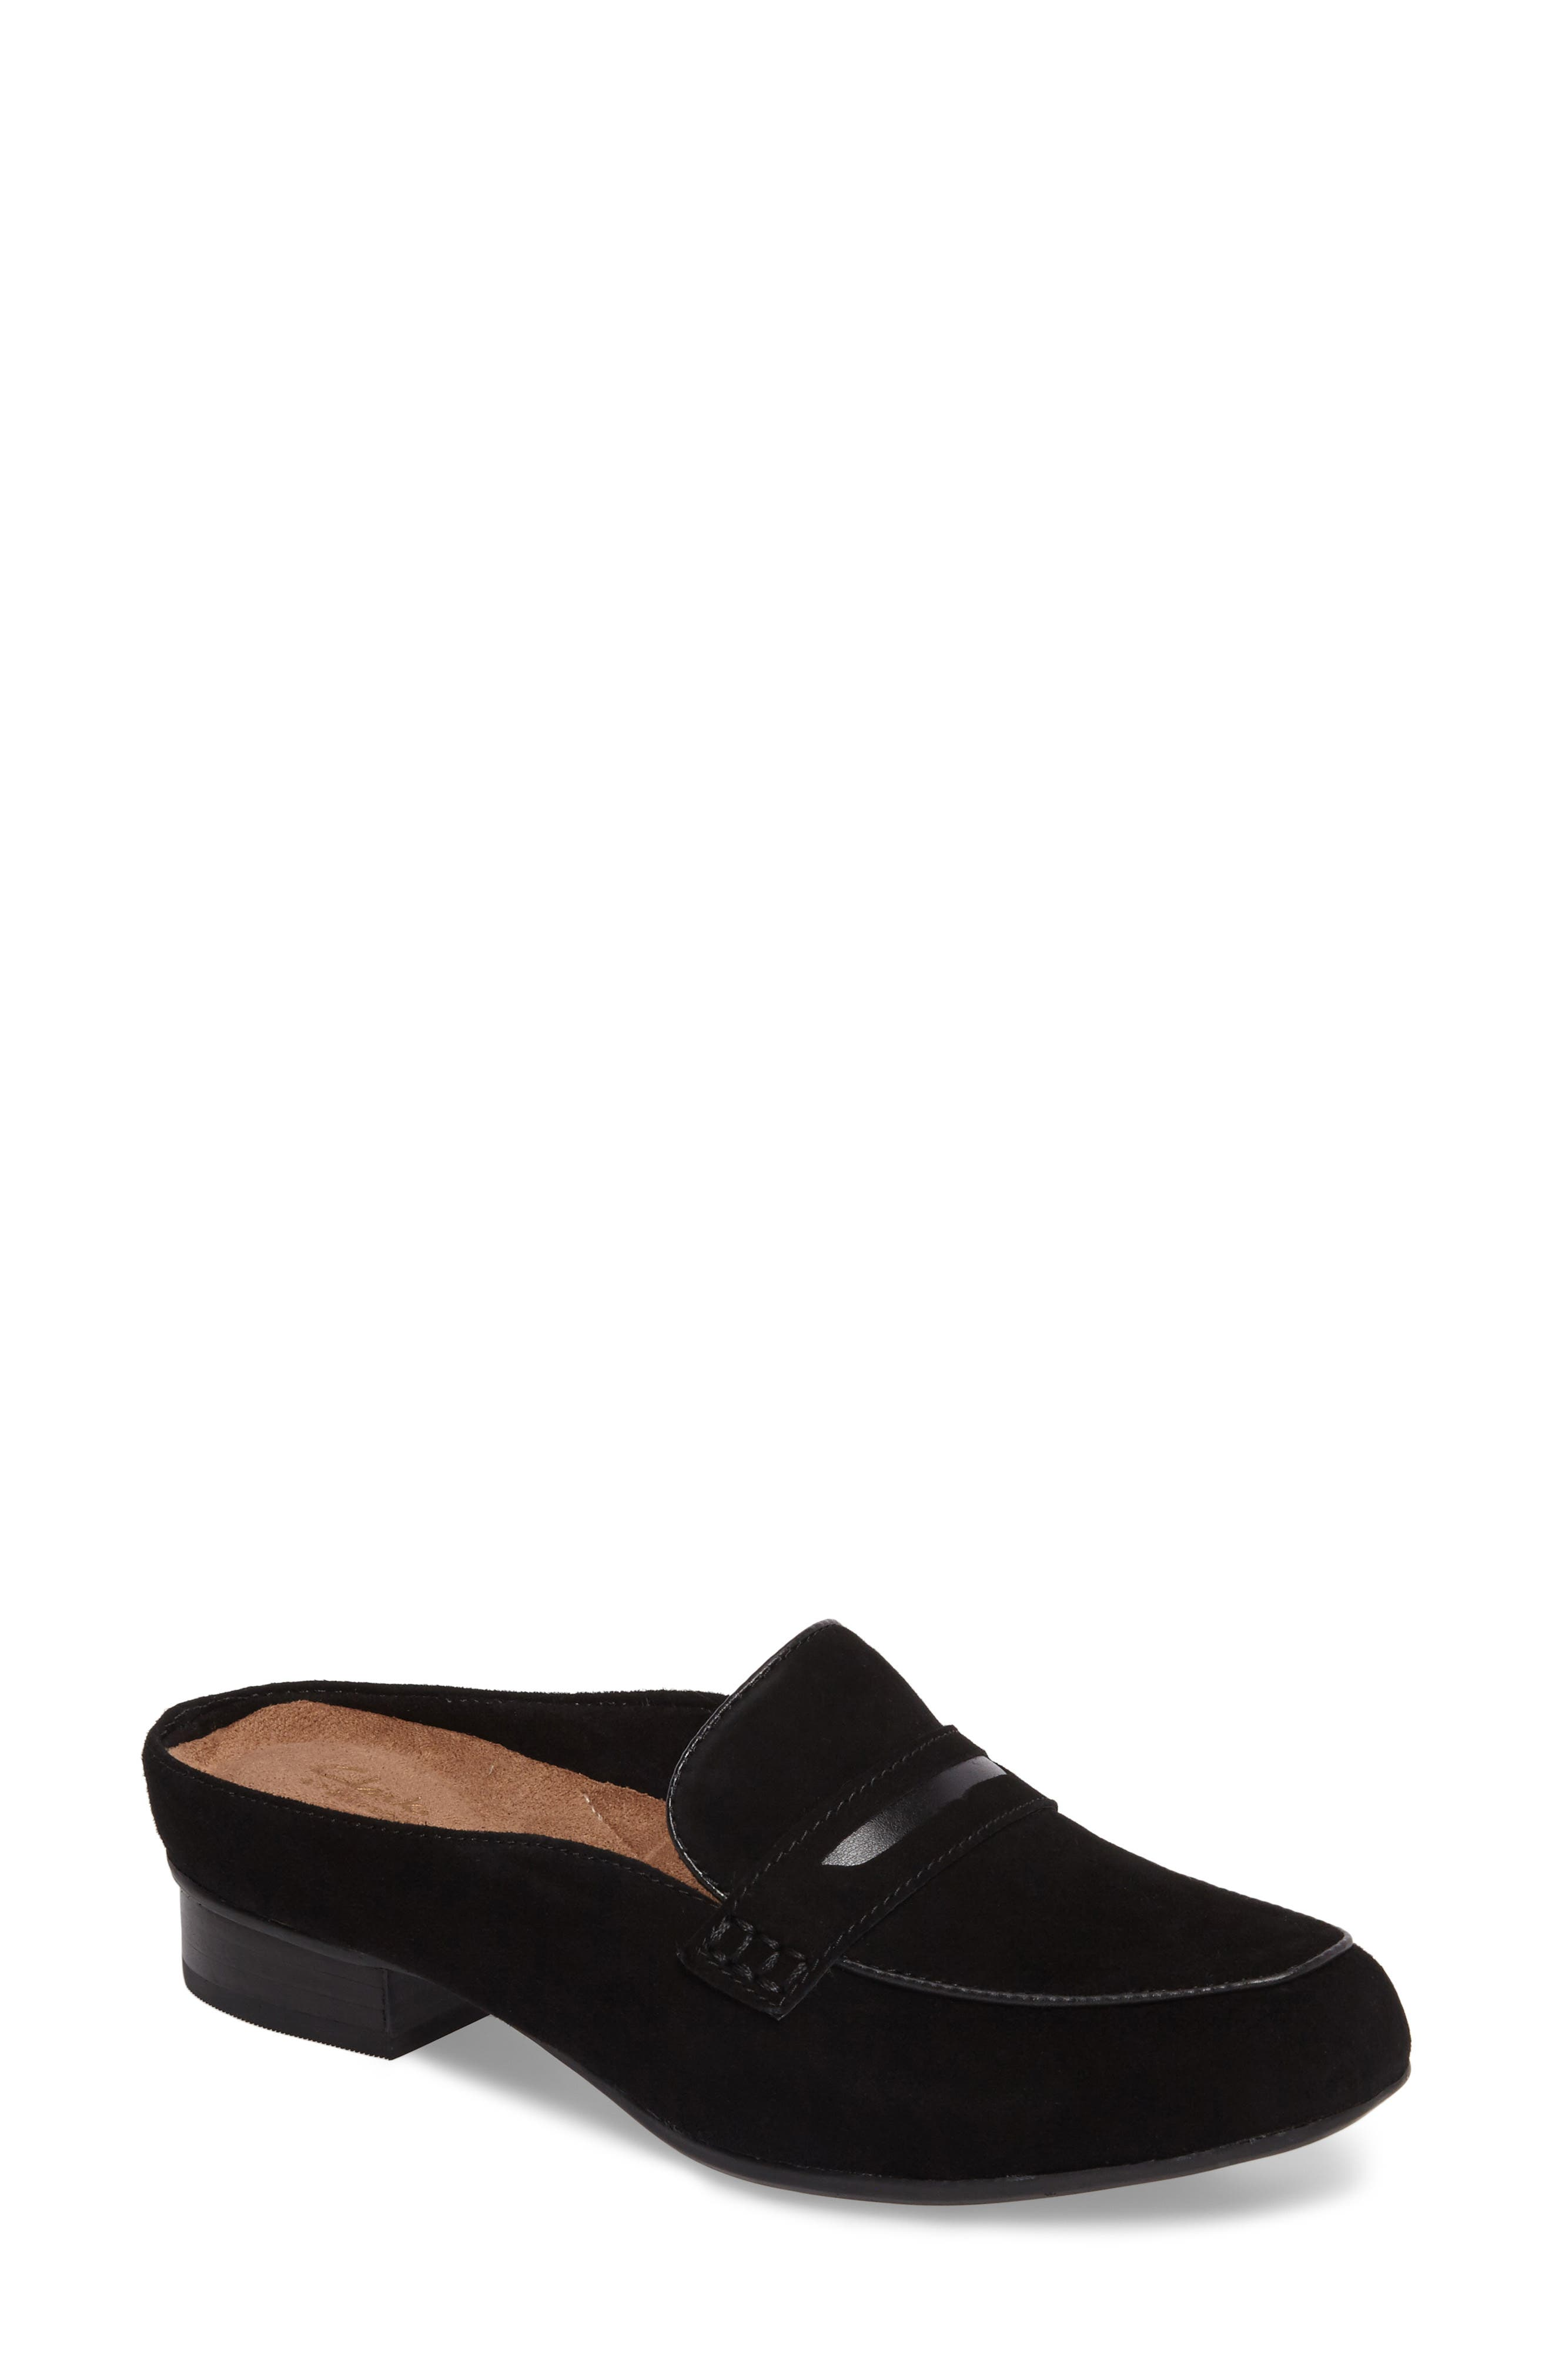 Main Image - Clarks® Keesha Donna Loafer Mule (Women)